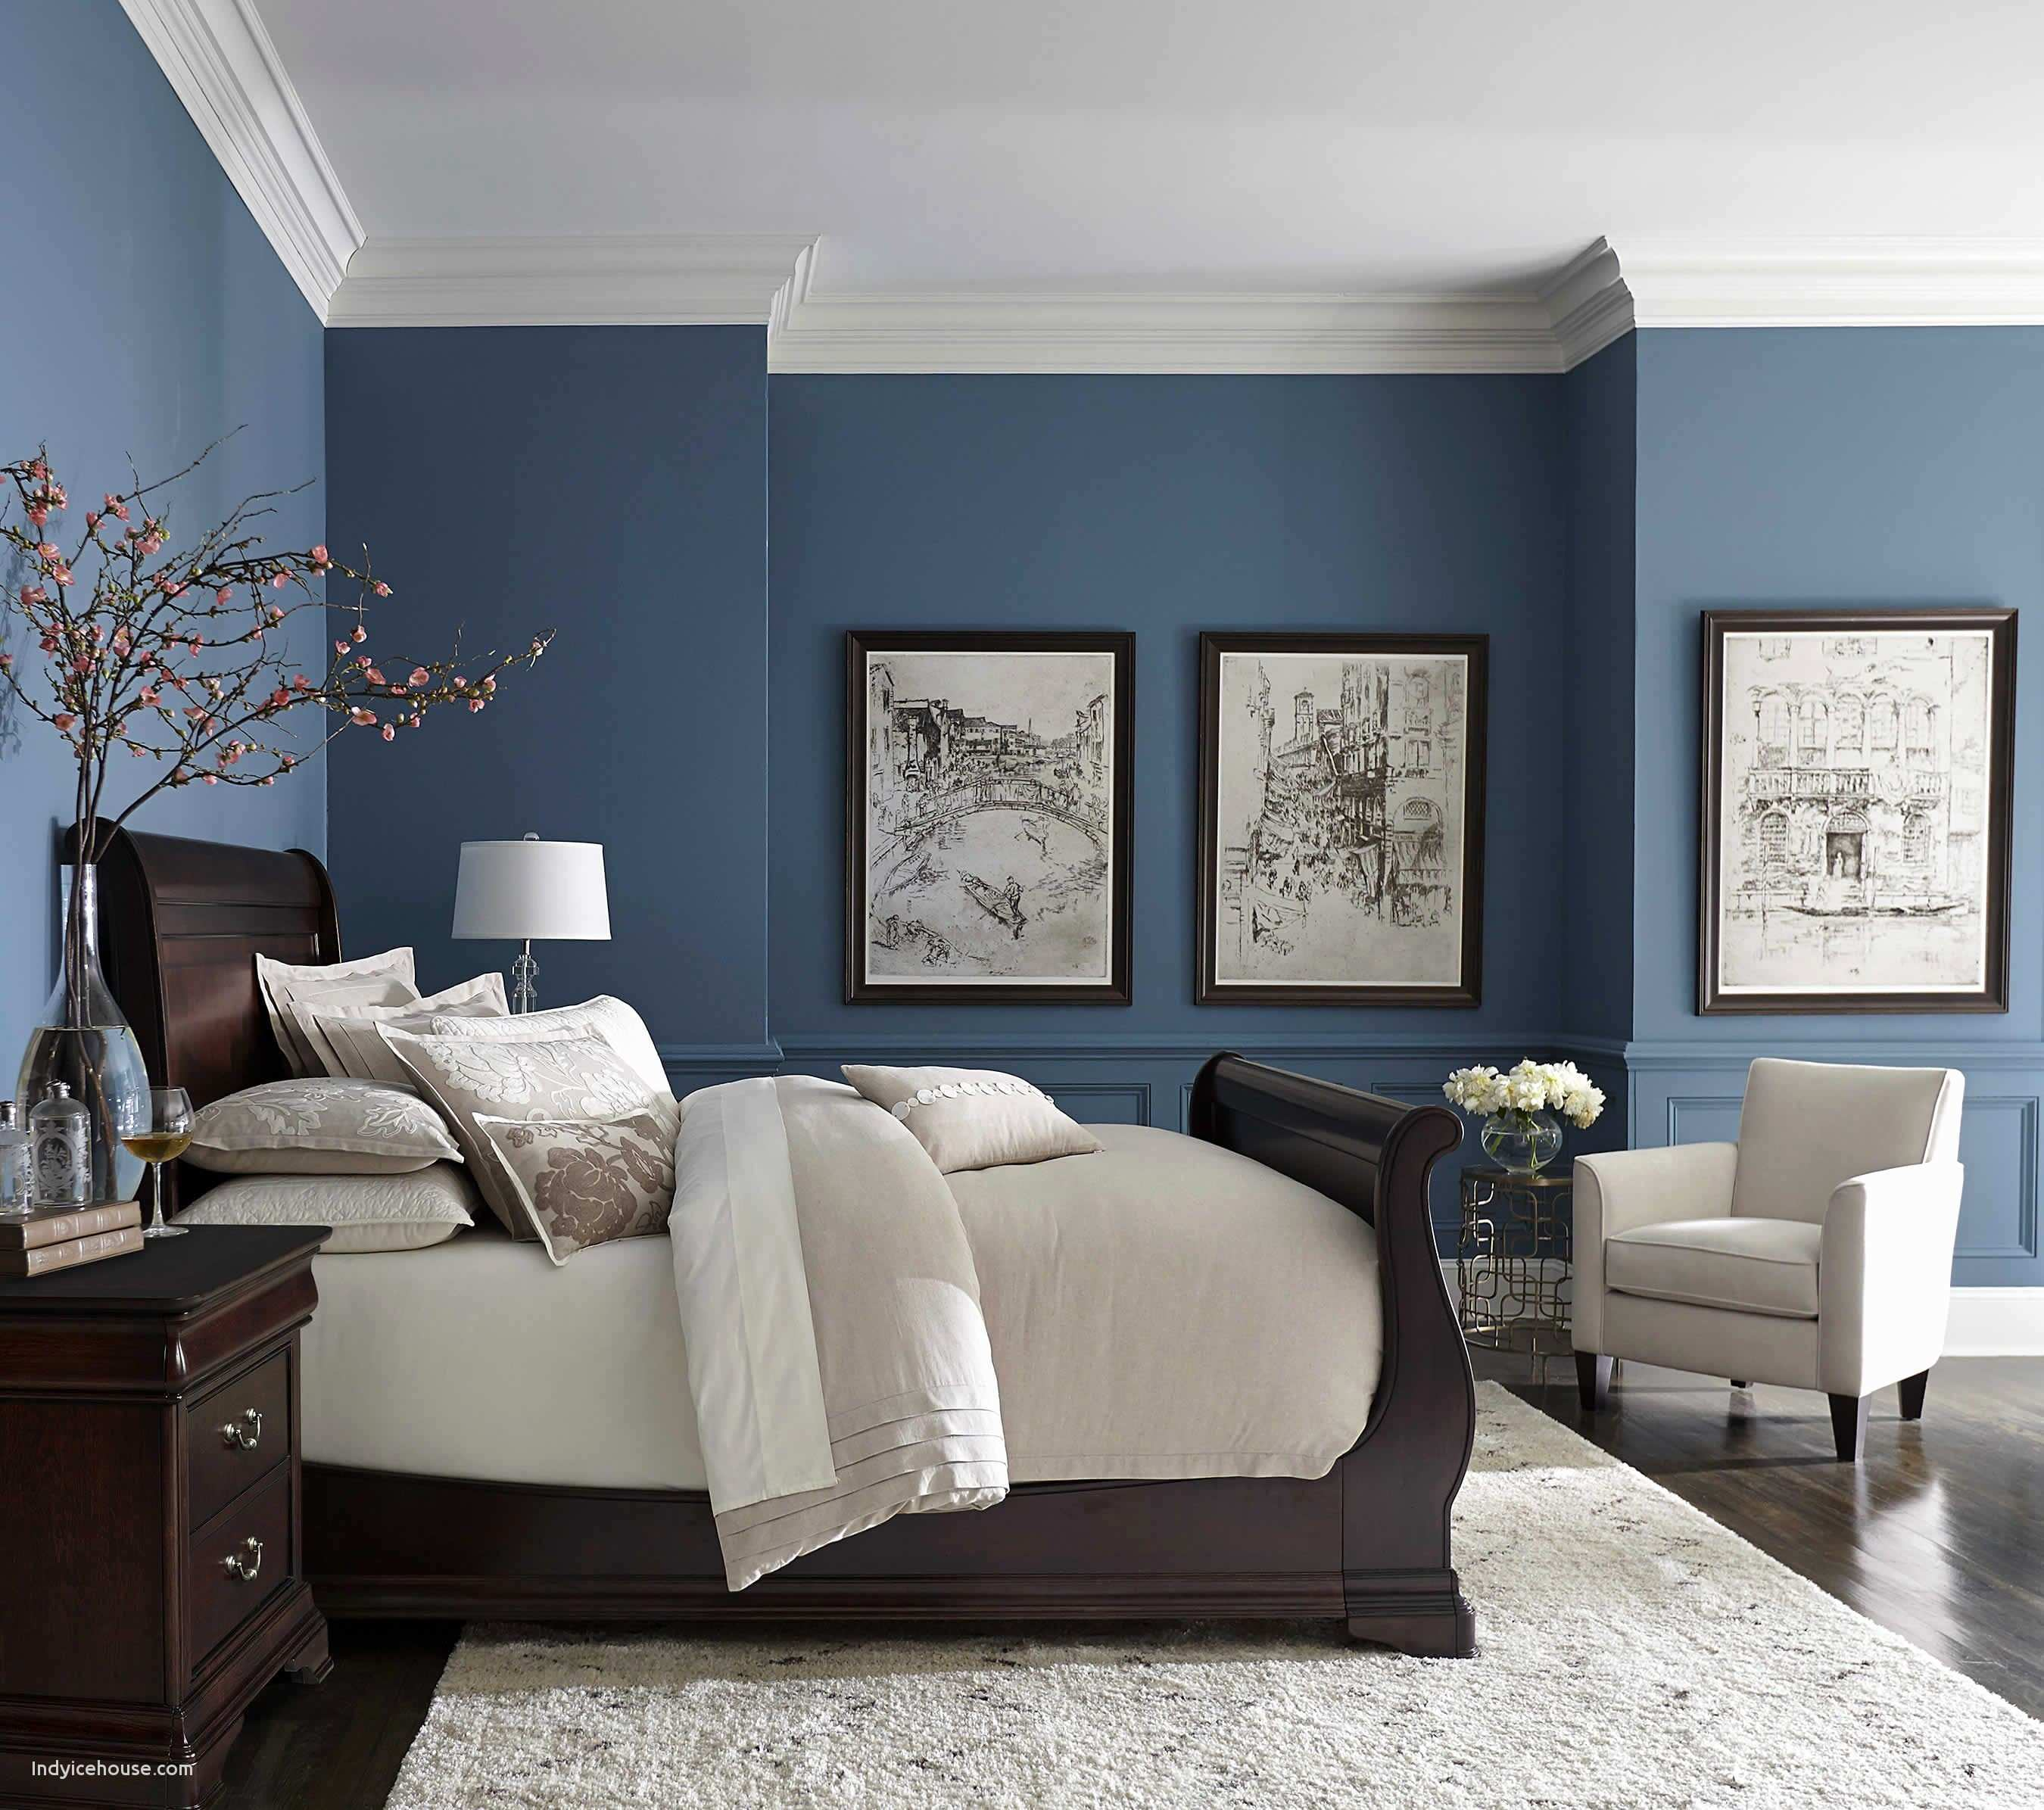 Lovely Bedroom Painting Ideas for Couples Home Interior